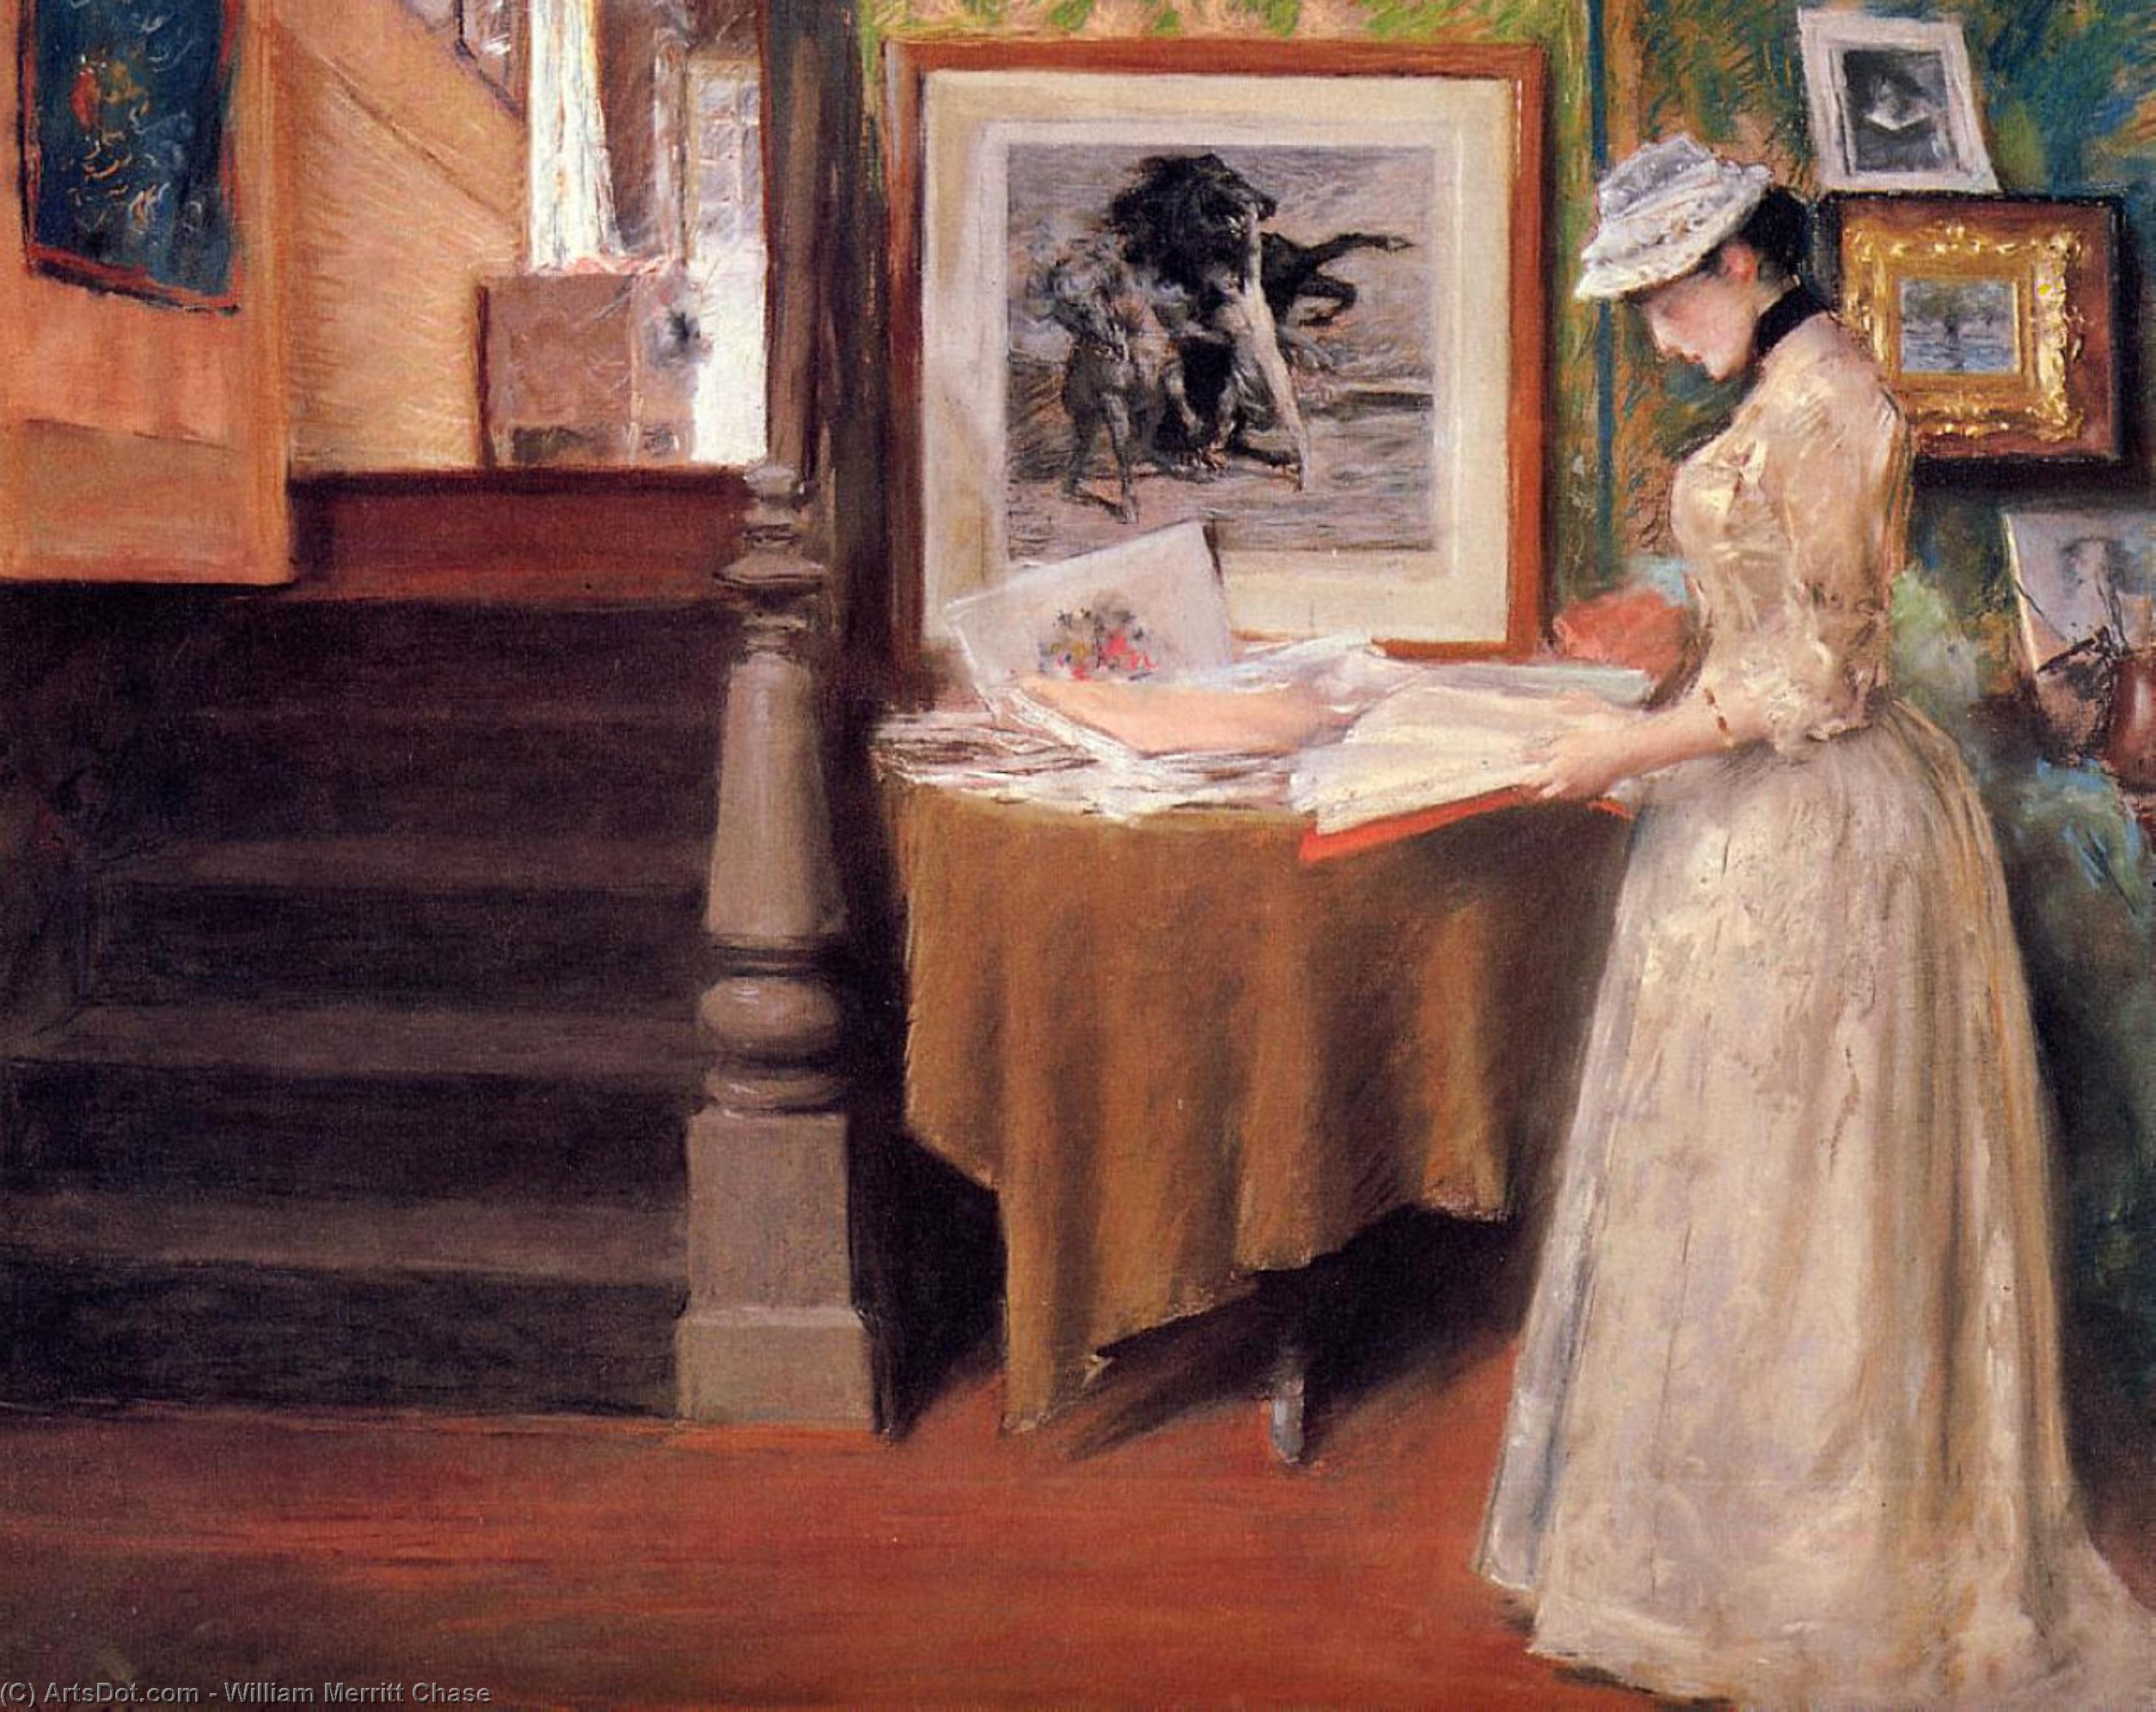 Wikioo.org - The Encyclopedia of Fine Arts - Painting, Artwork by William Merritt Chase - Interior, Young Woman at a Table